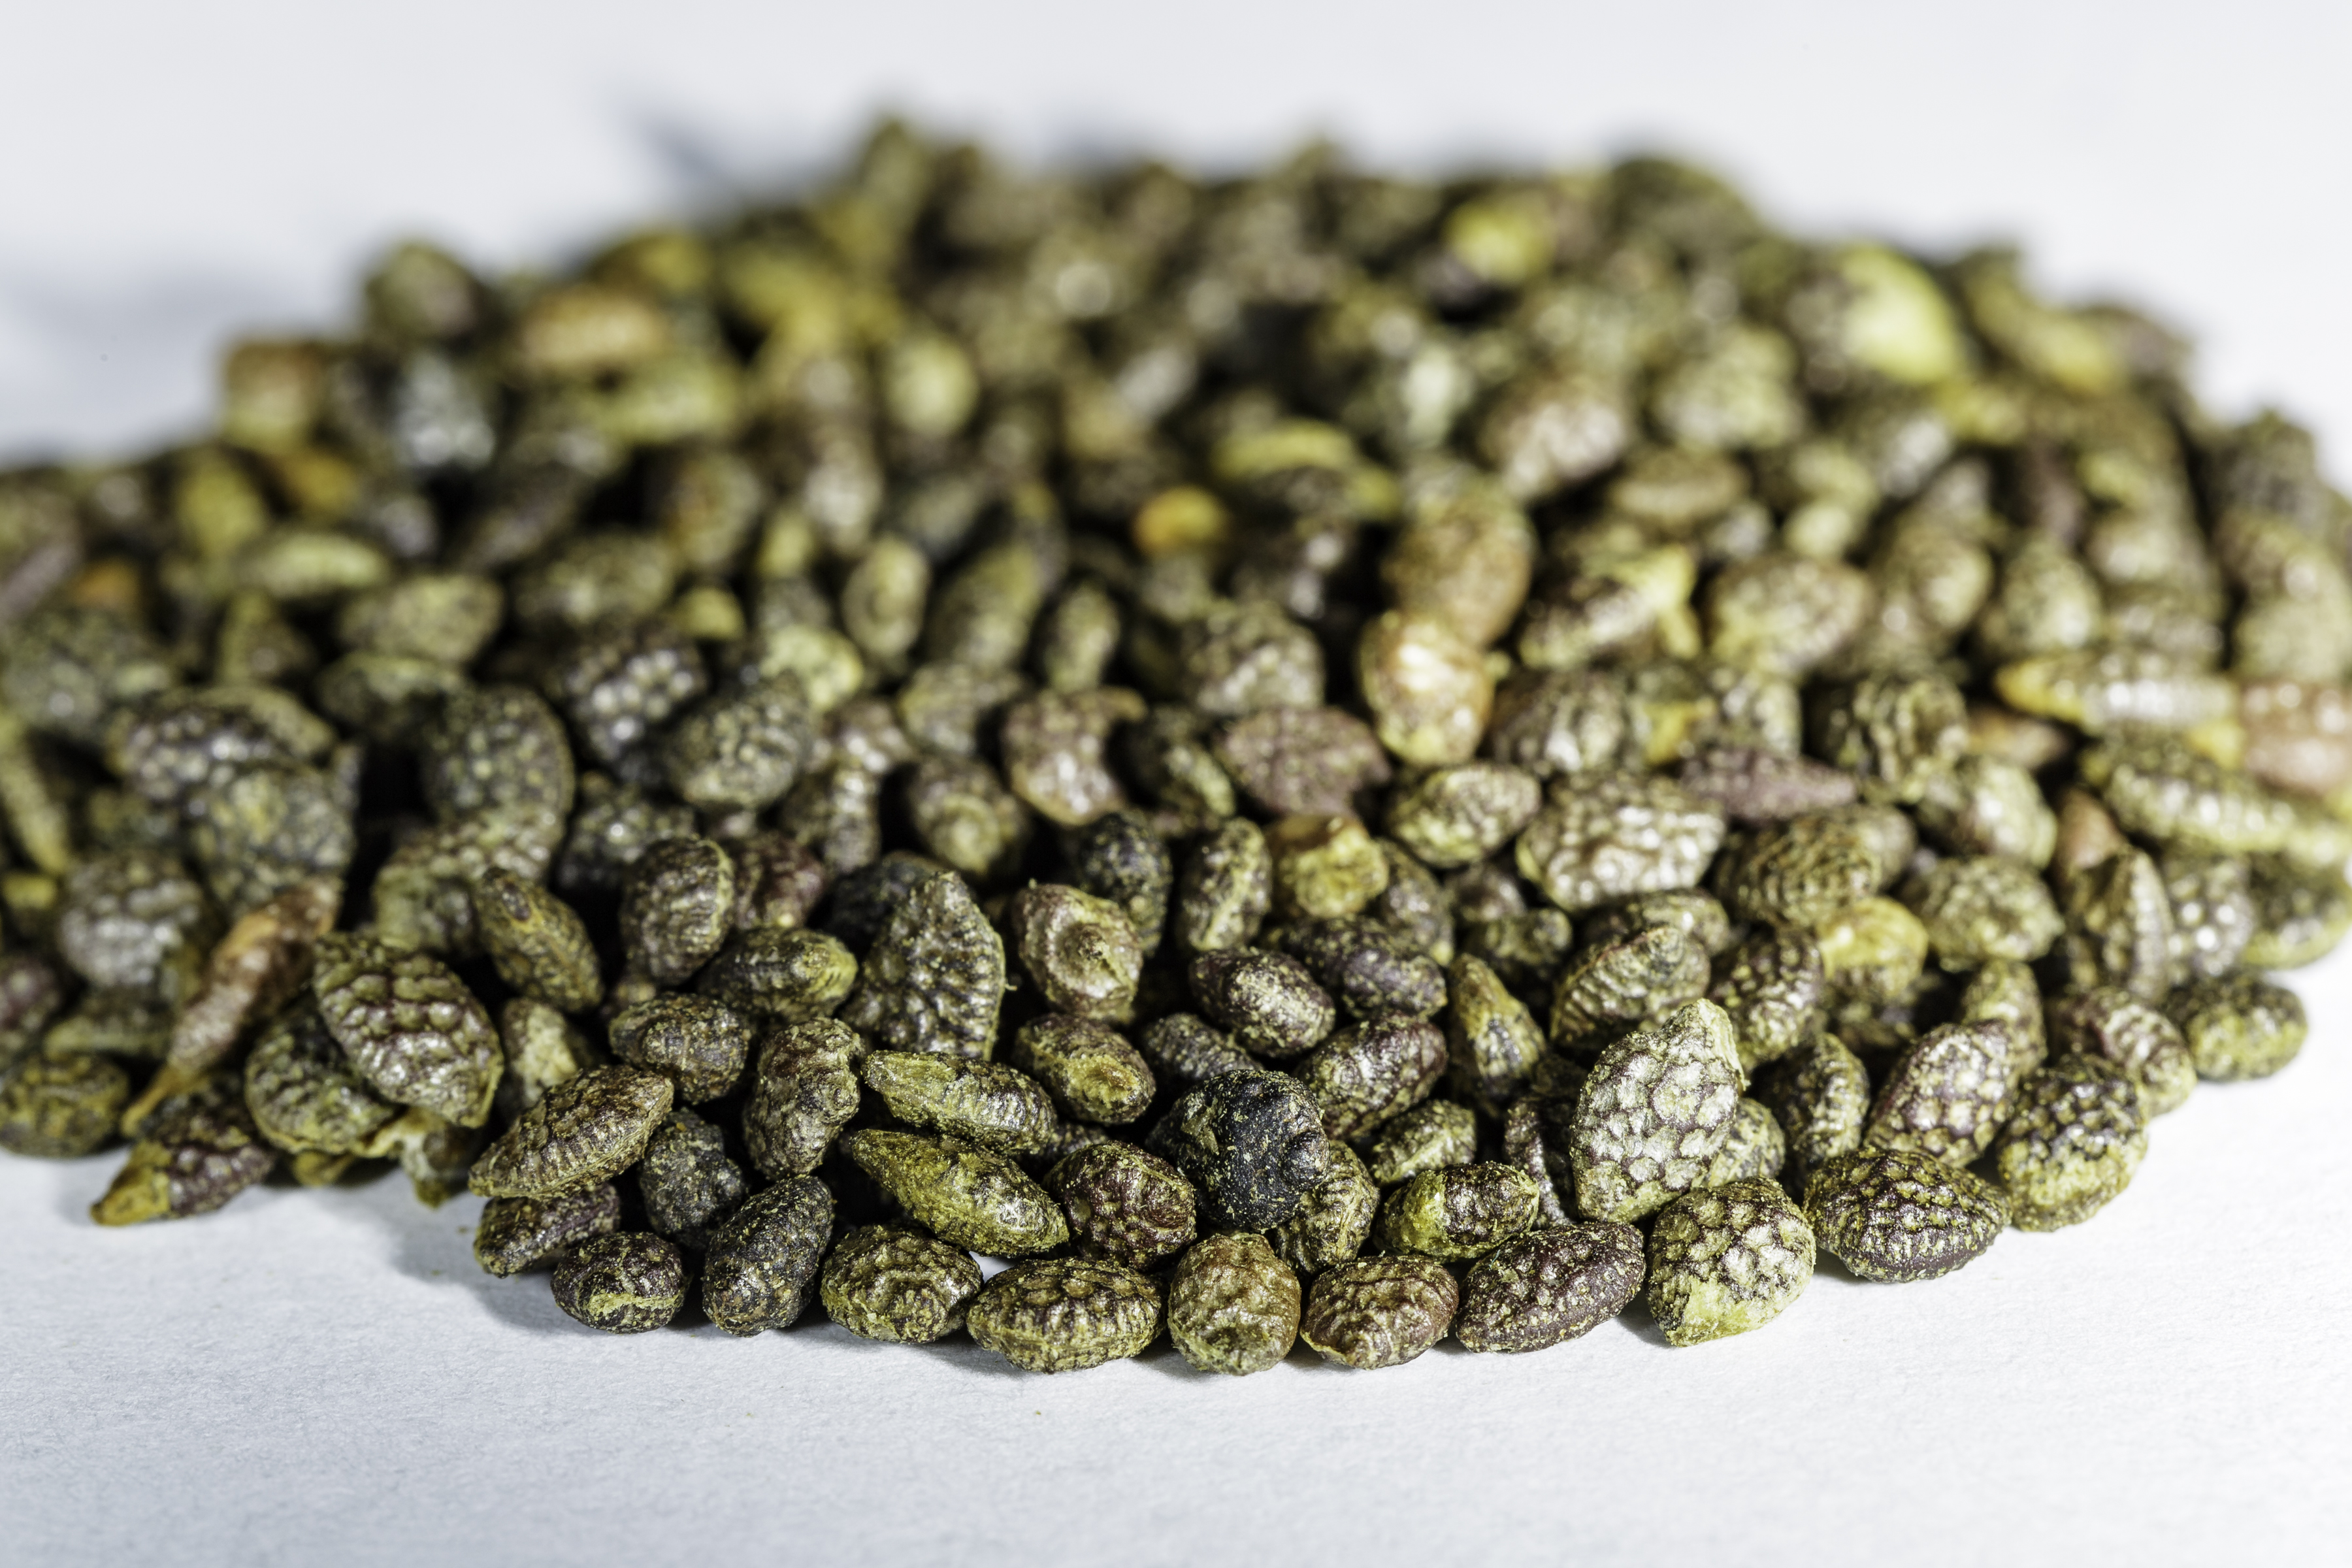 An angled front view of a small pile of Passiflora caerulea (Blue Passionflower) seeds.